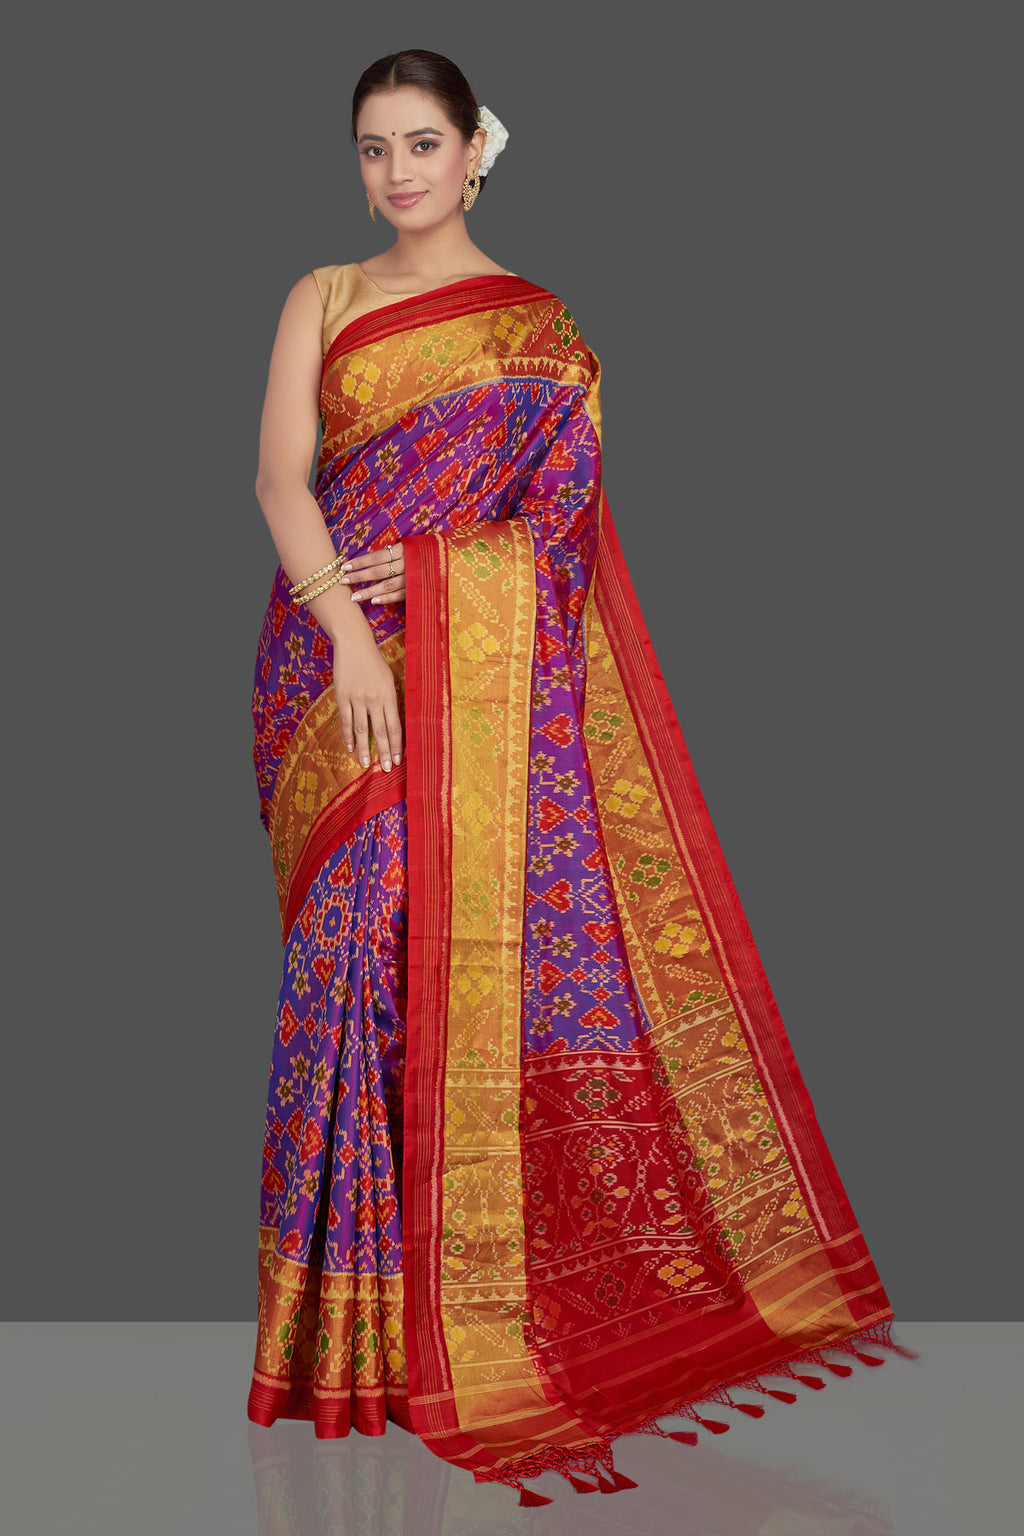 Shop stunning purple ikkat Patola silk sari online in USA with red golden zari border. Make a fashion statement on weddings and special occasions in stunning silk sarees, Patola sarees, handwoven silk sarees, designer saris from Pure Elegance Indian clothing store in USA.-full view